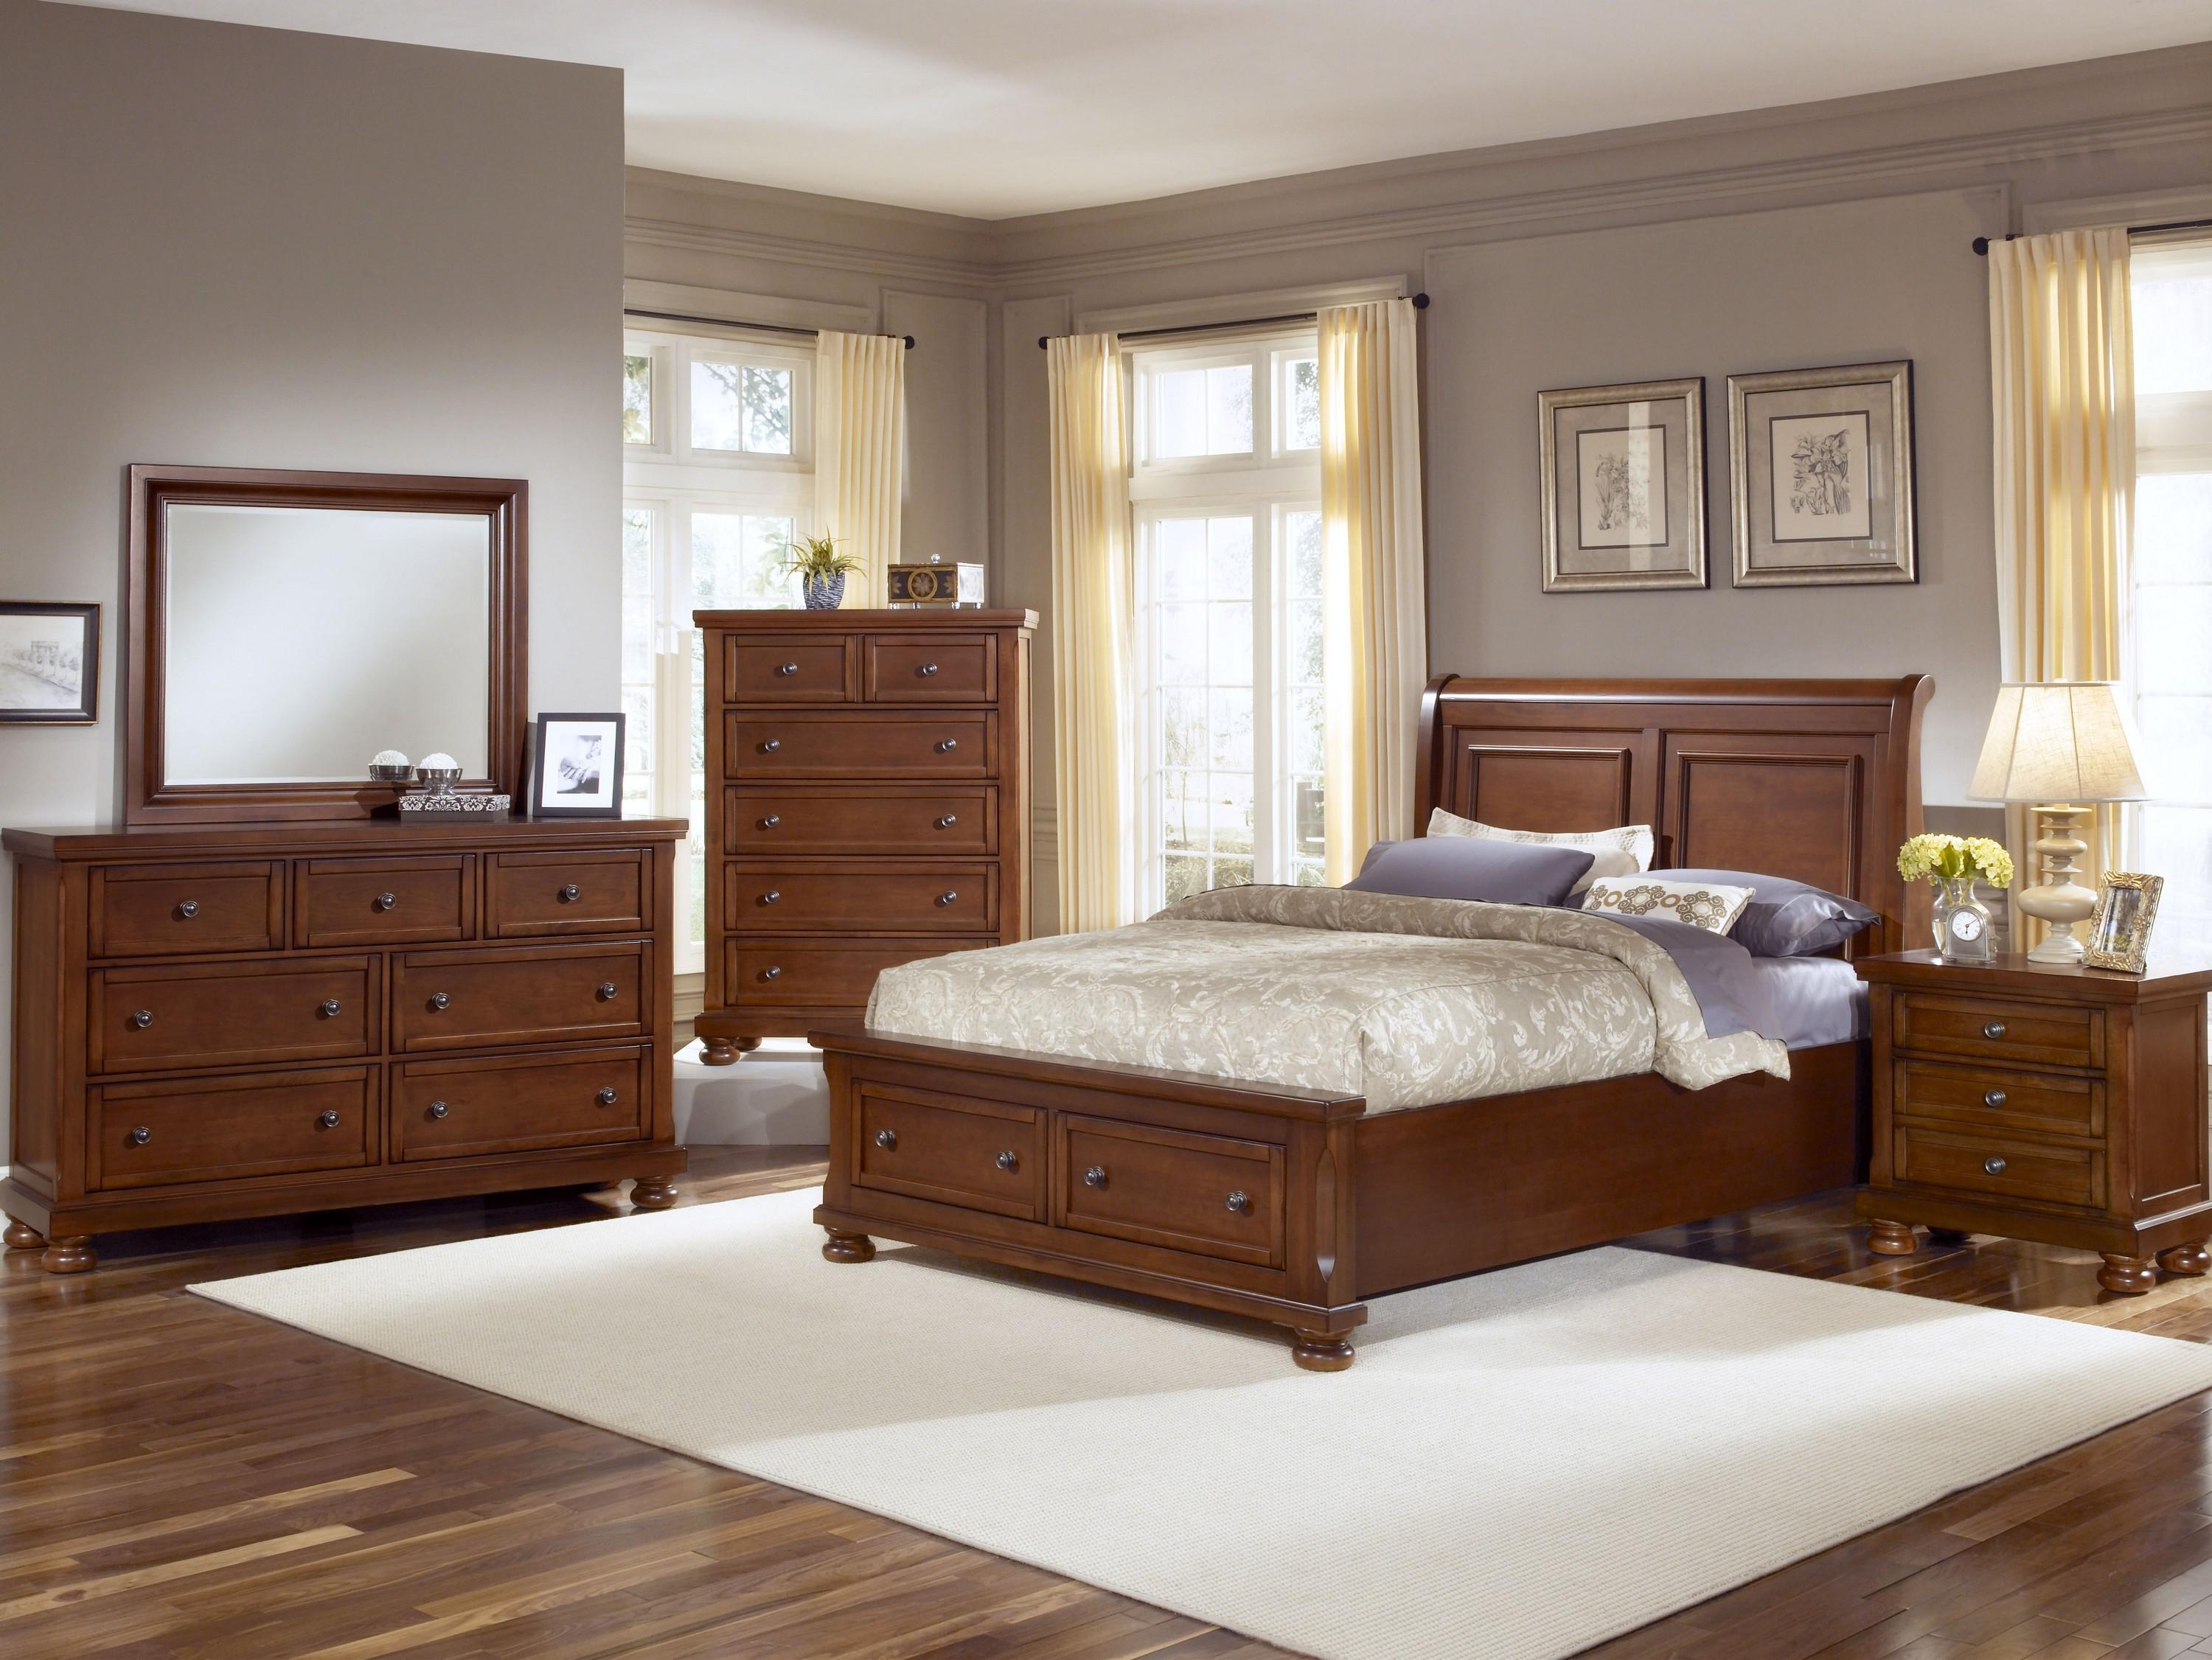 Vaughan Bassett Reflections King Bedroom Group | Godby Home Furnishings |  Bedroom Groups Noblesville, Carmel, Avon, Indianapolis, Indiana